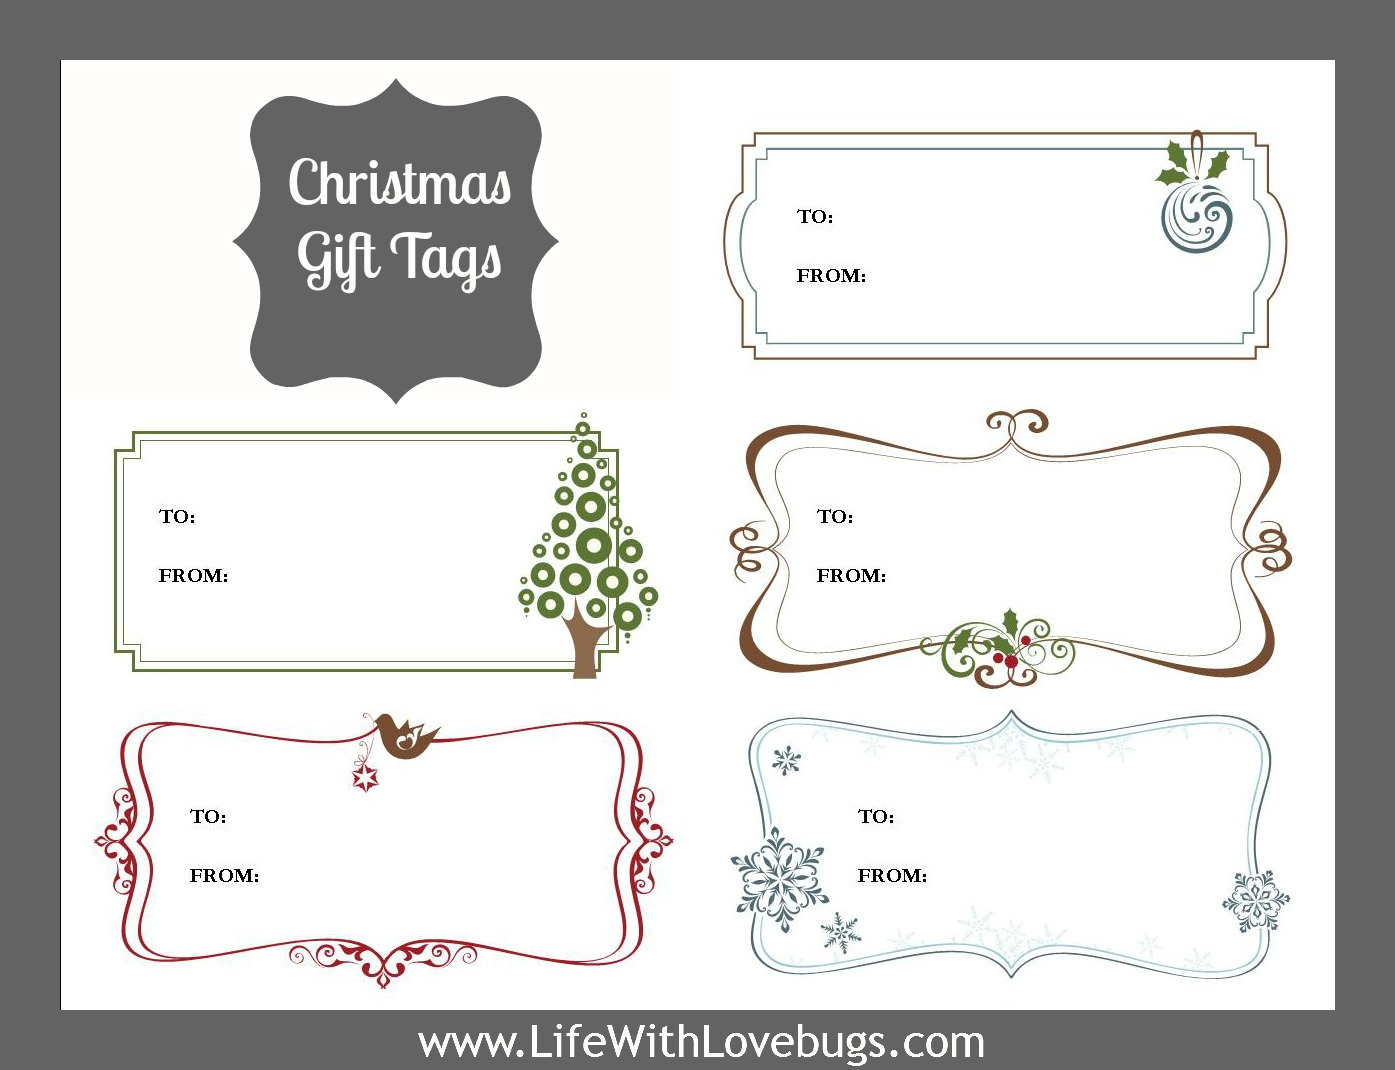 christmas gift tags printable life with lovebugs - Printable Christmas Name Tags